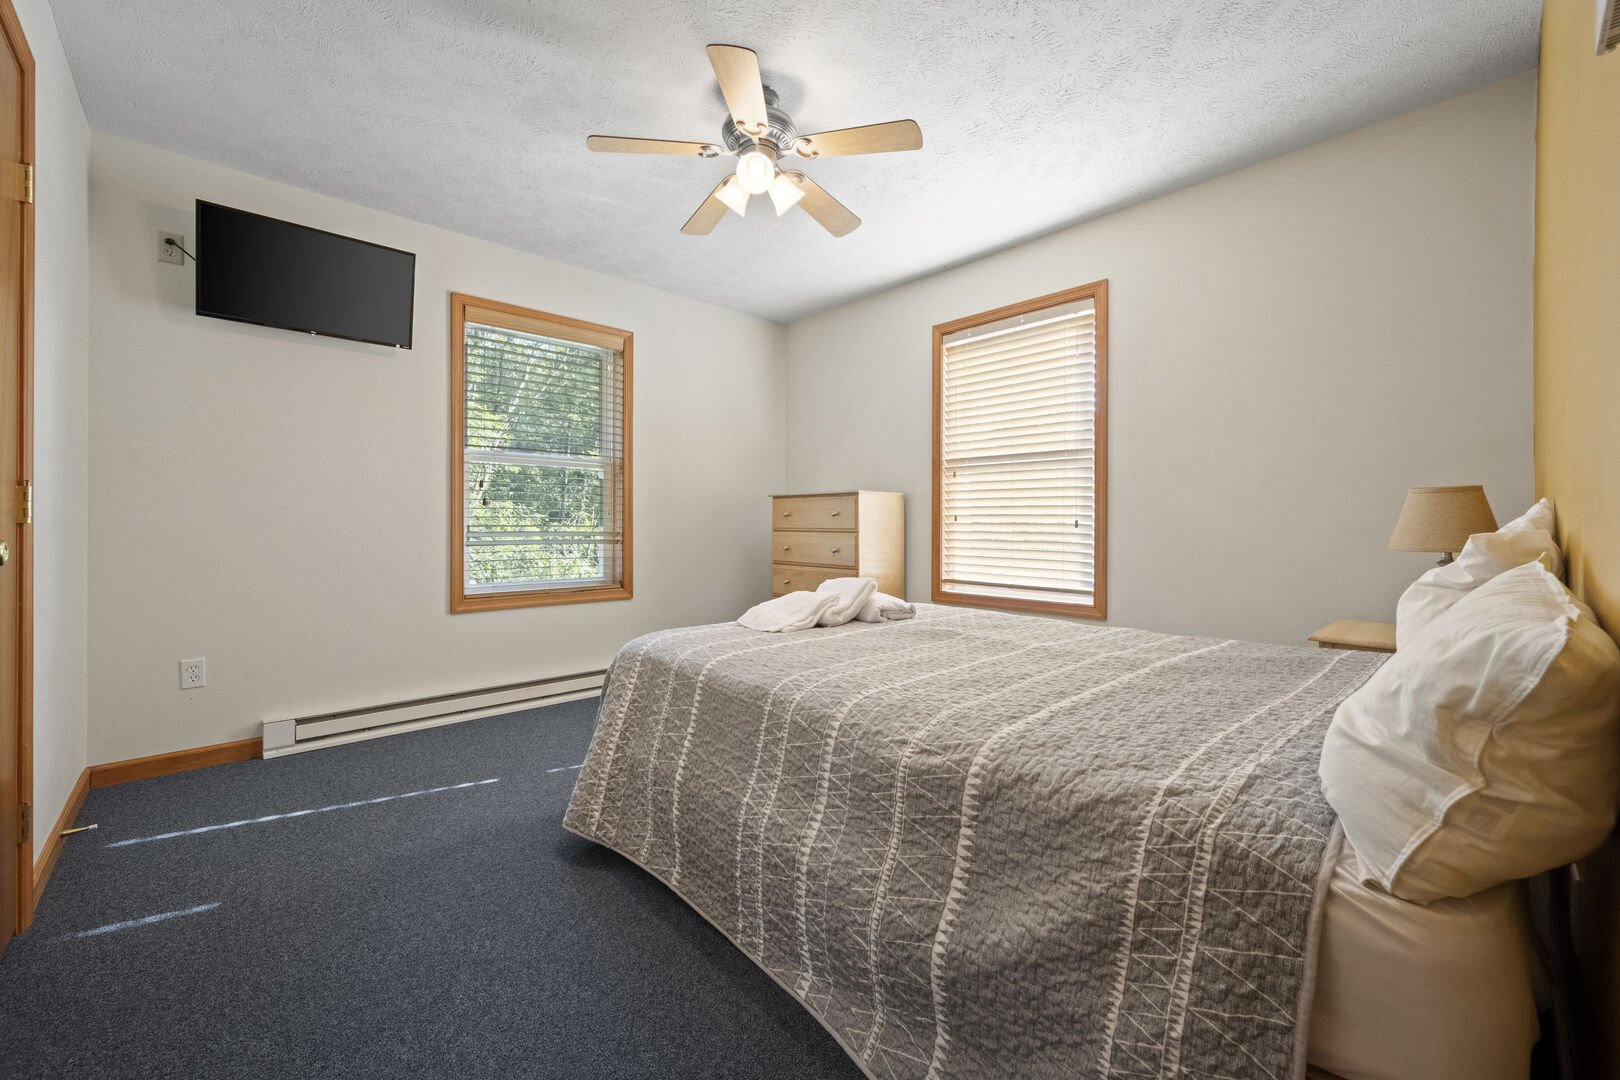 Bedroom with one bed and nearby tv.